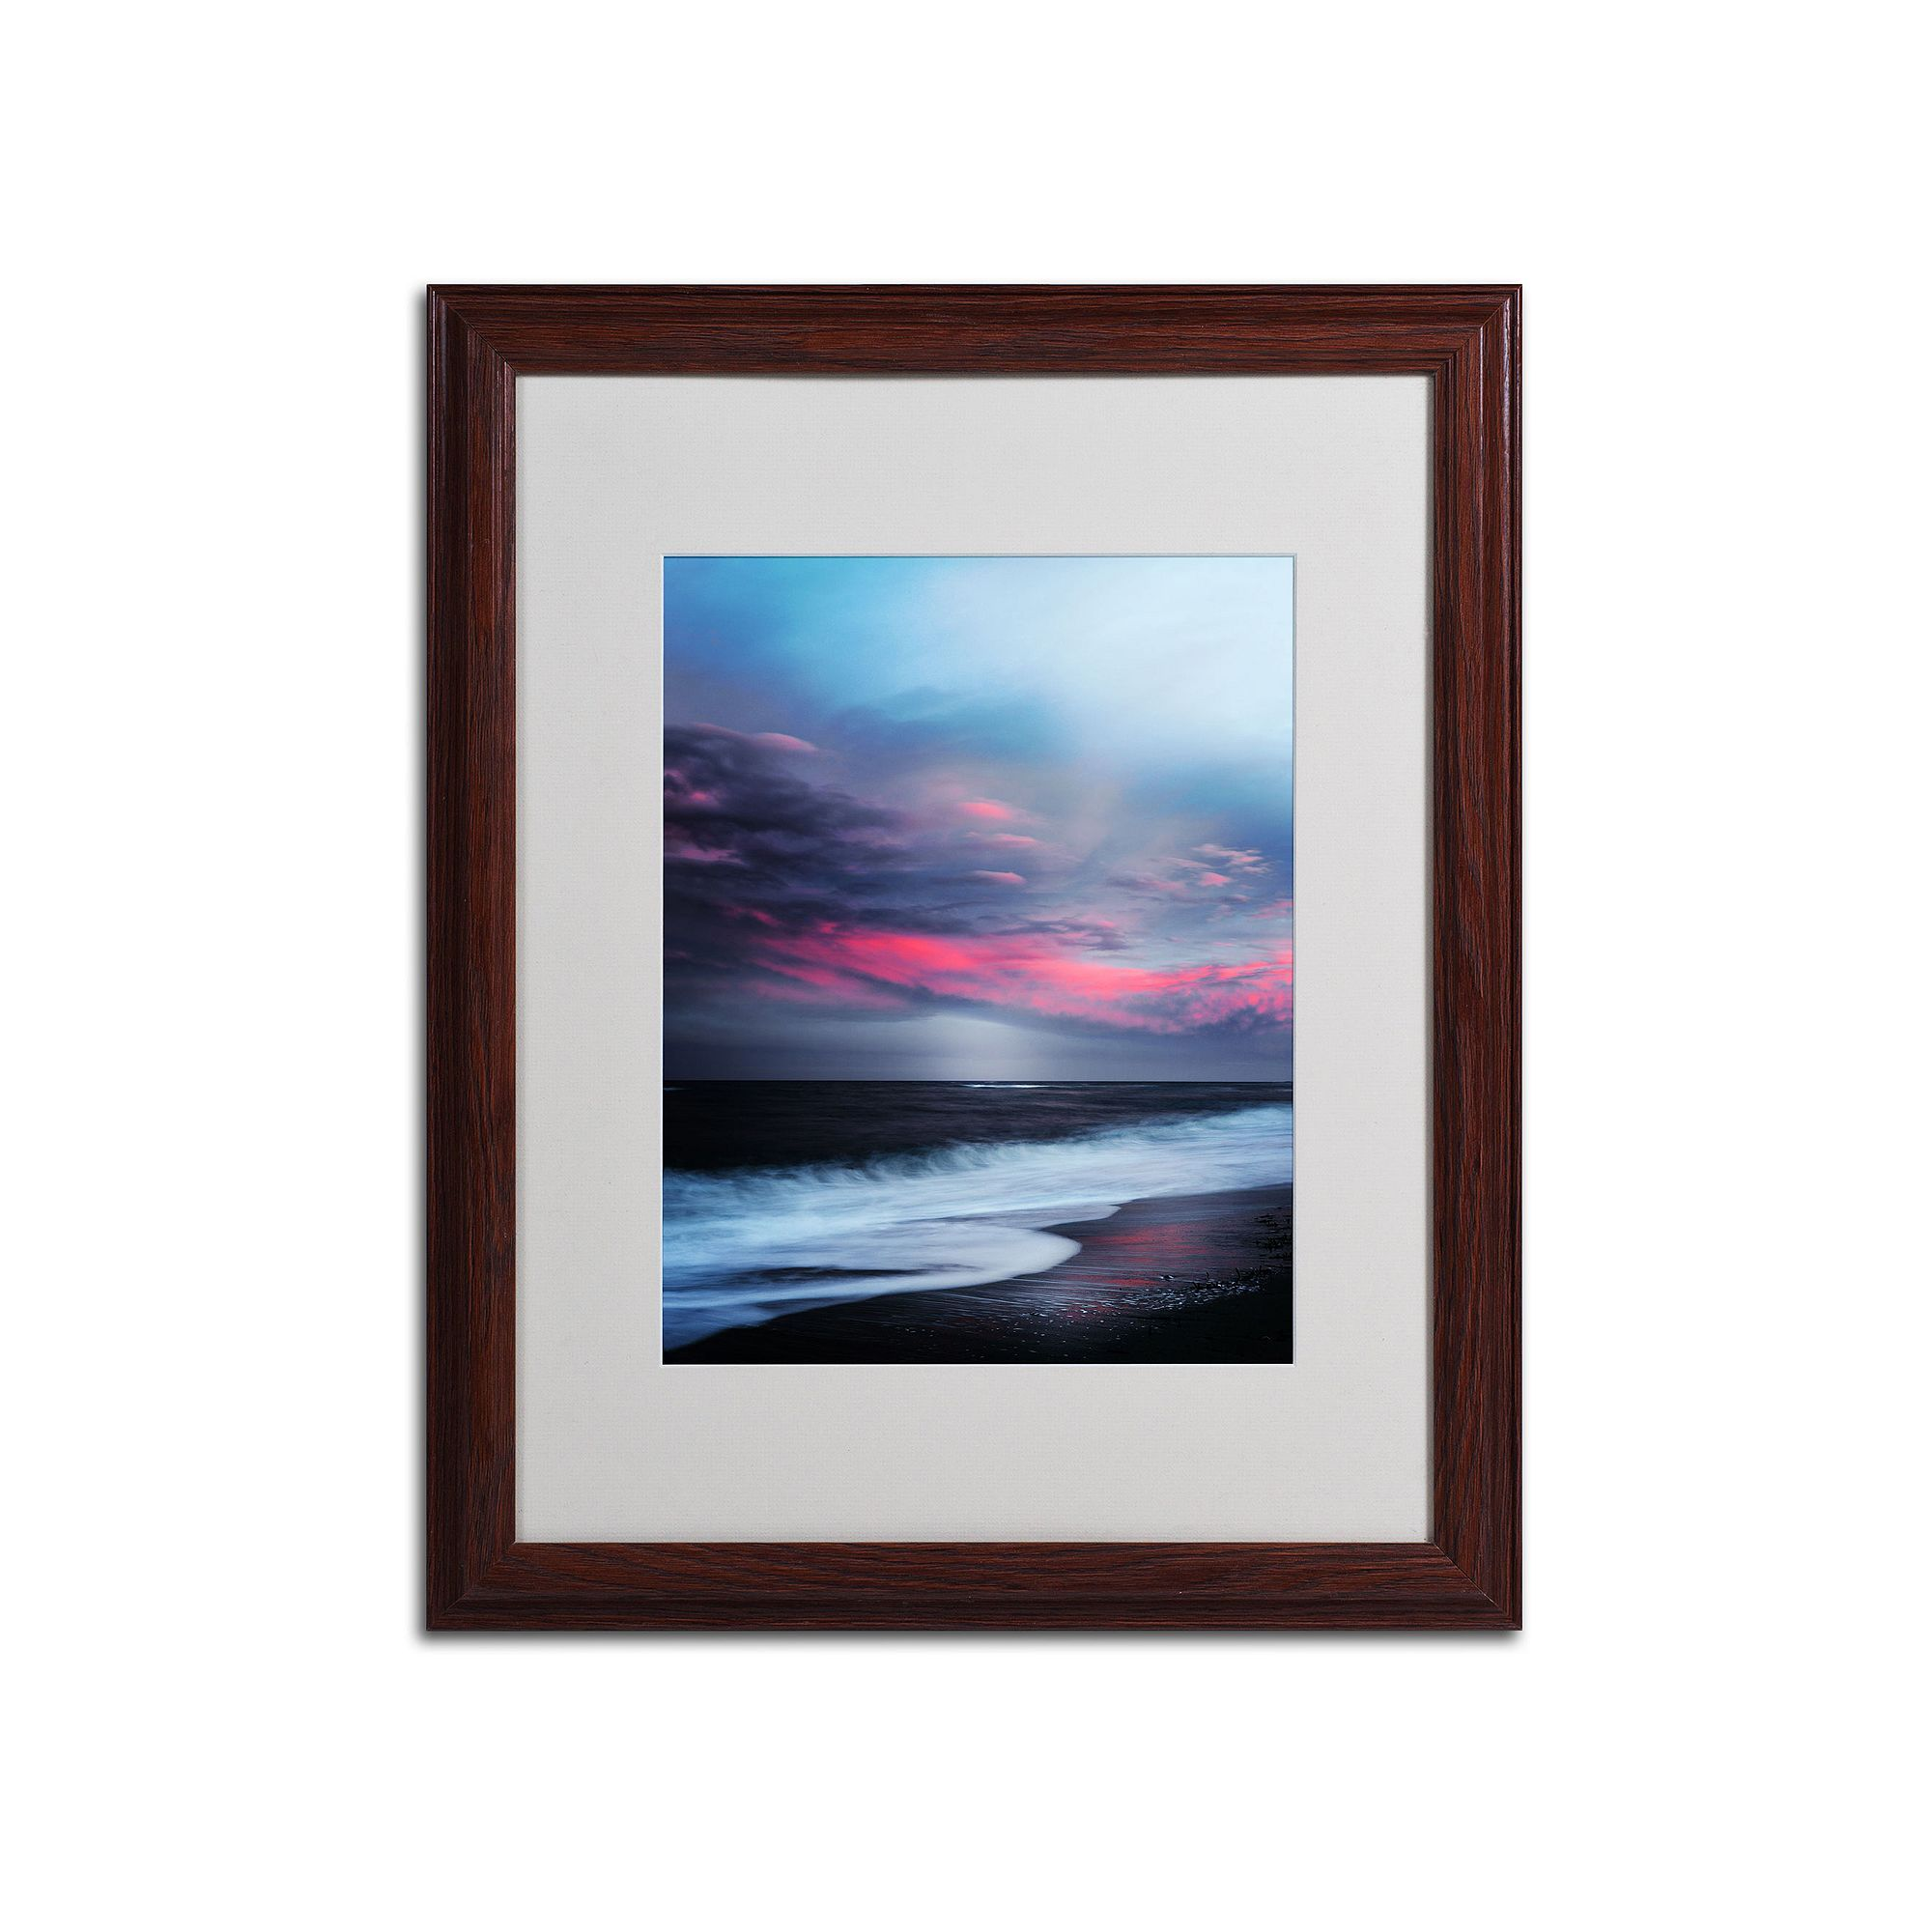 Trademark fine art salt water sound wood finish framed wall art